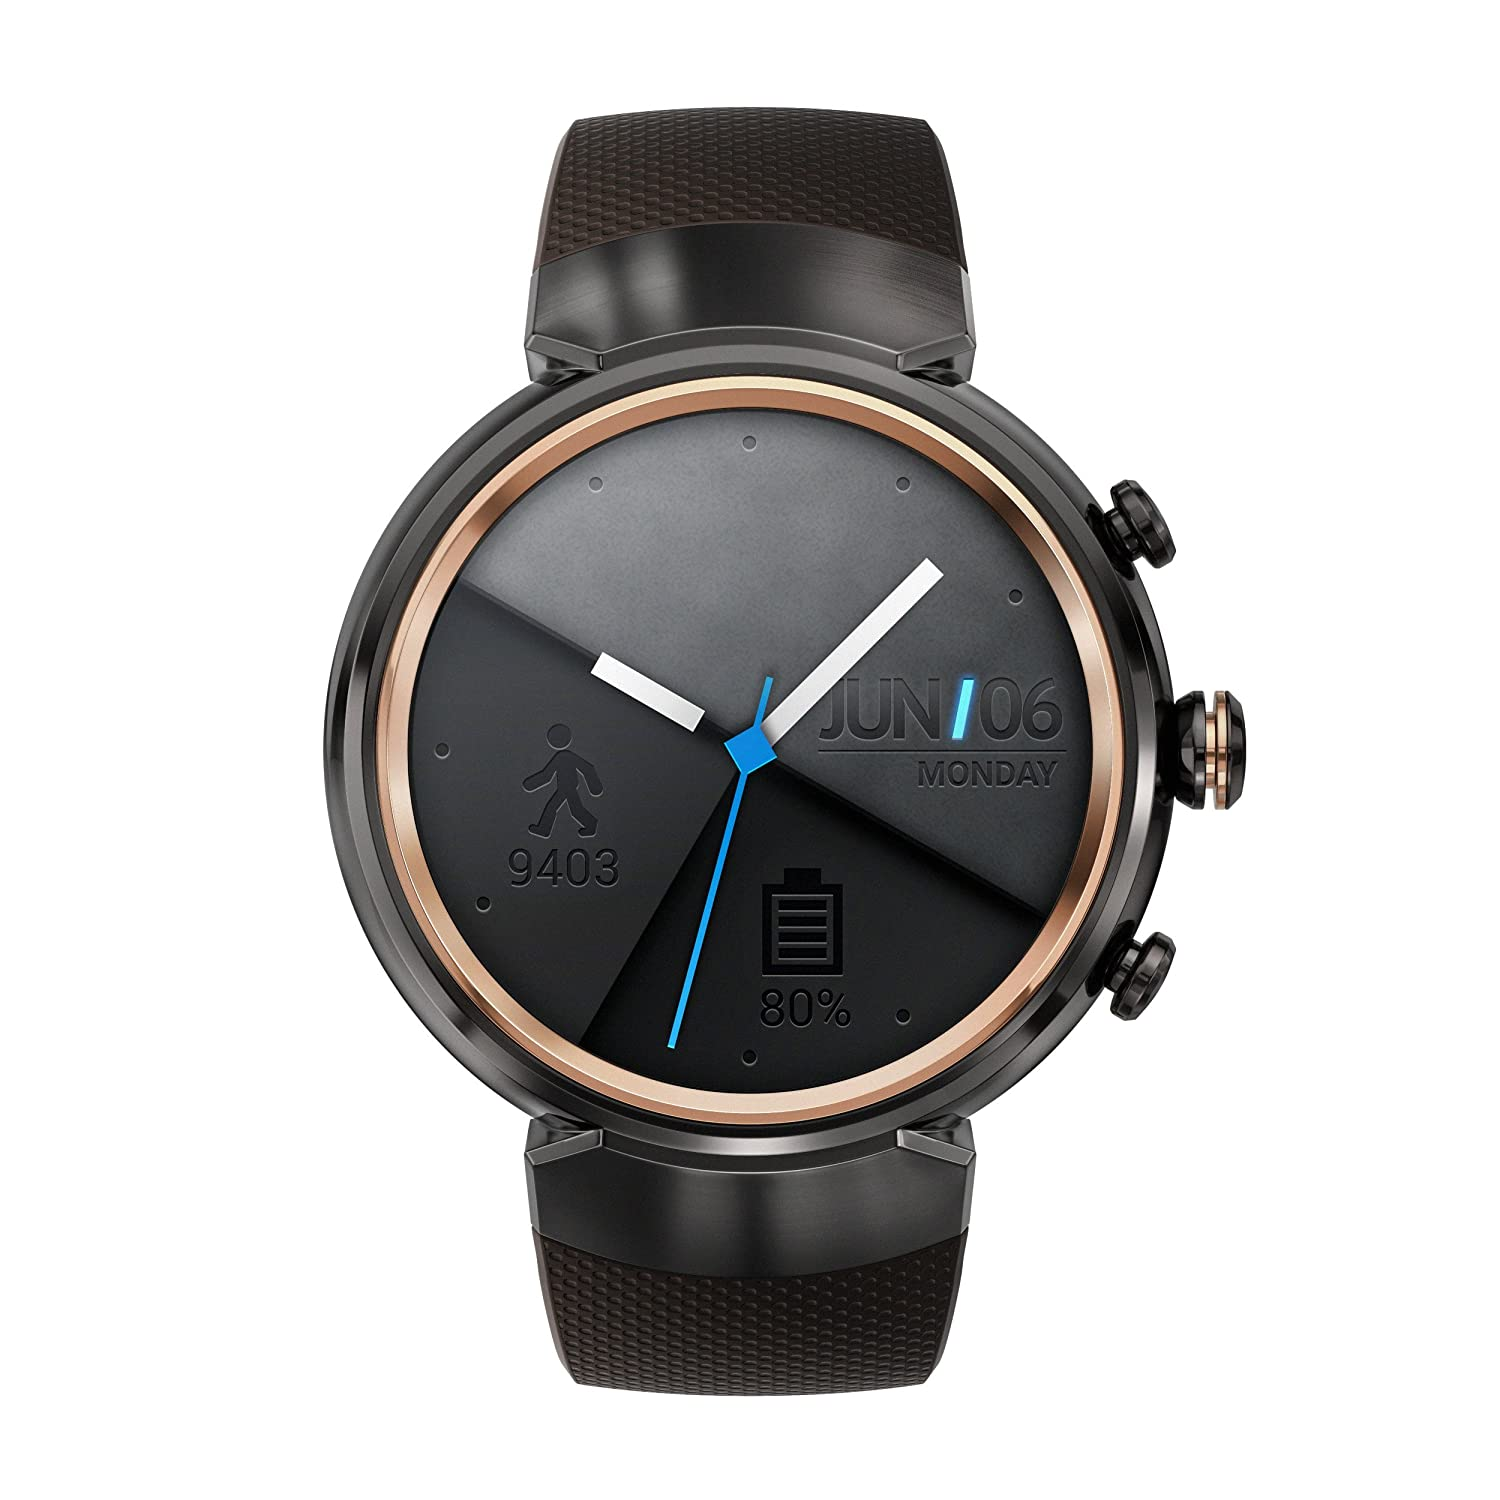 Asus Reloj ZenWatch 3 WI503Q-1RGRY0001 (3,5 cm), Amoled, 400 ...